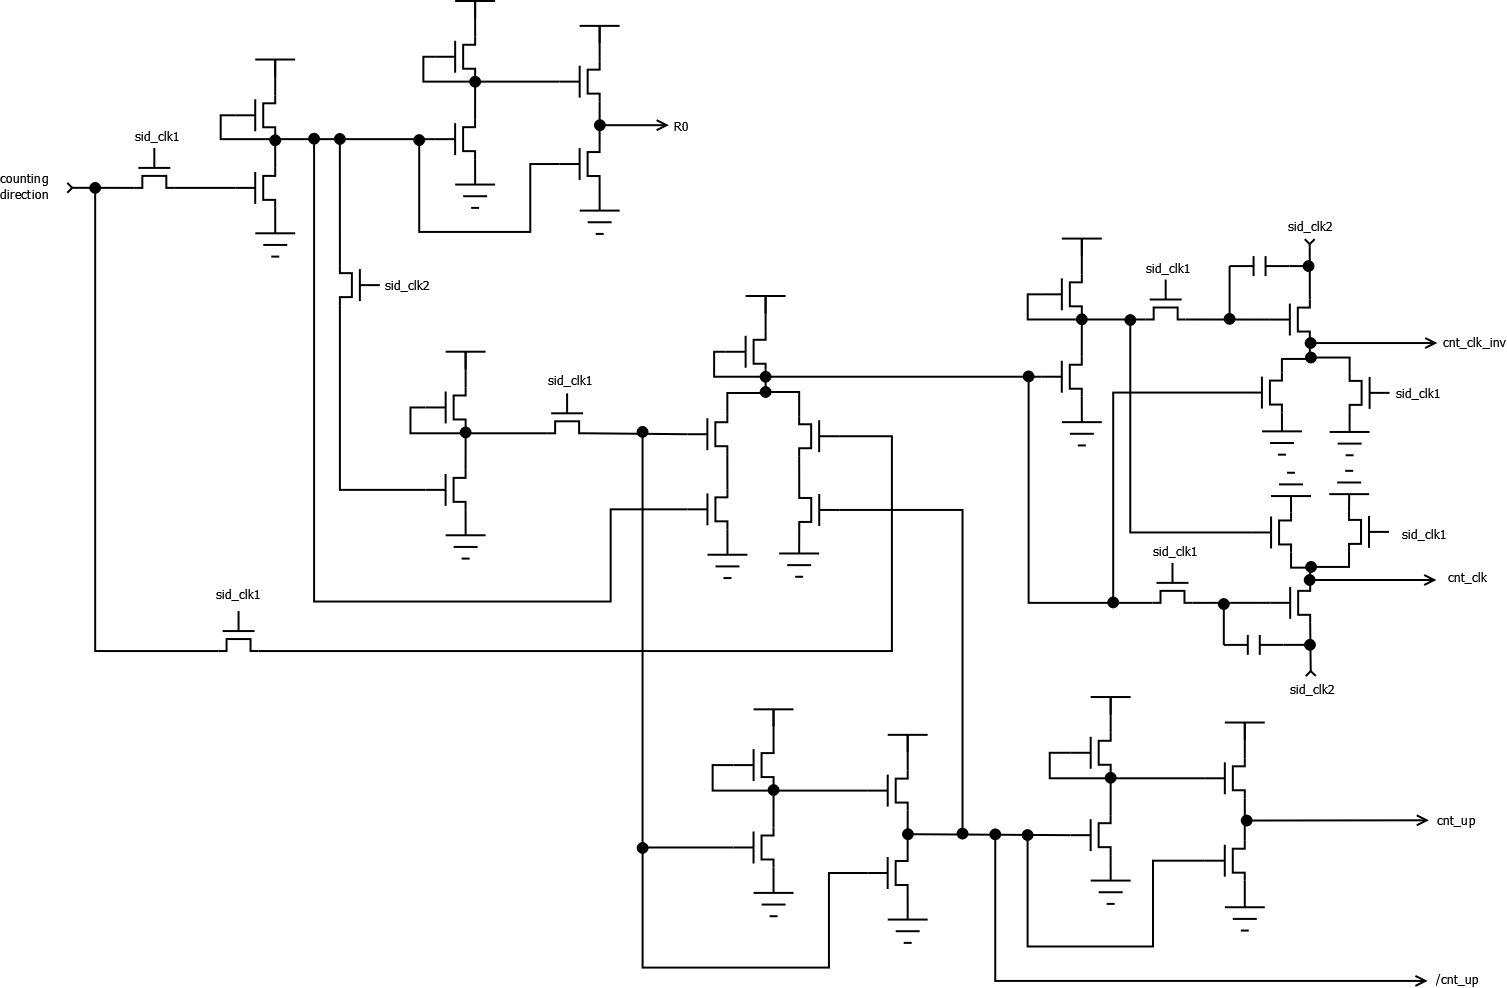 Libsidplayfp Wiki Sid Internals Counter Logic Circuit Design Here Is The Input Carry For Bit 0 Rest Of Included In Previous Picture